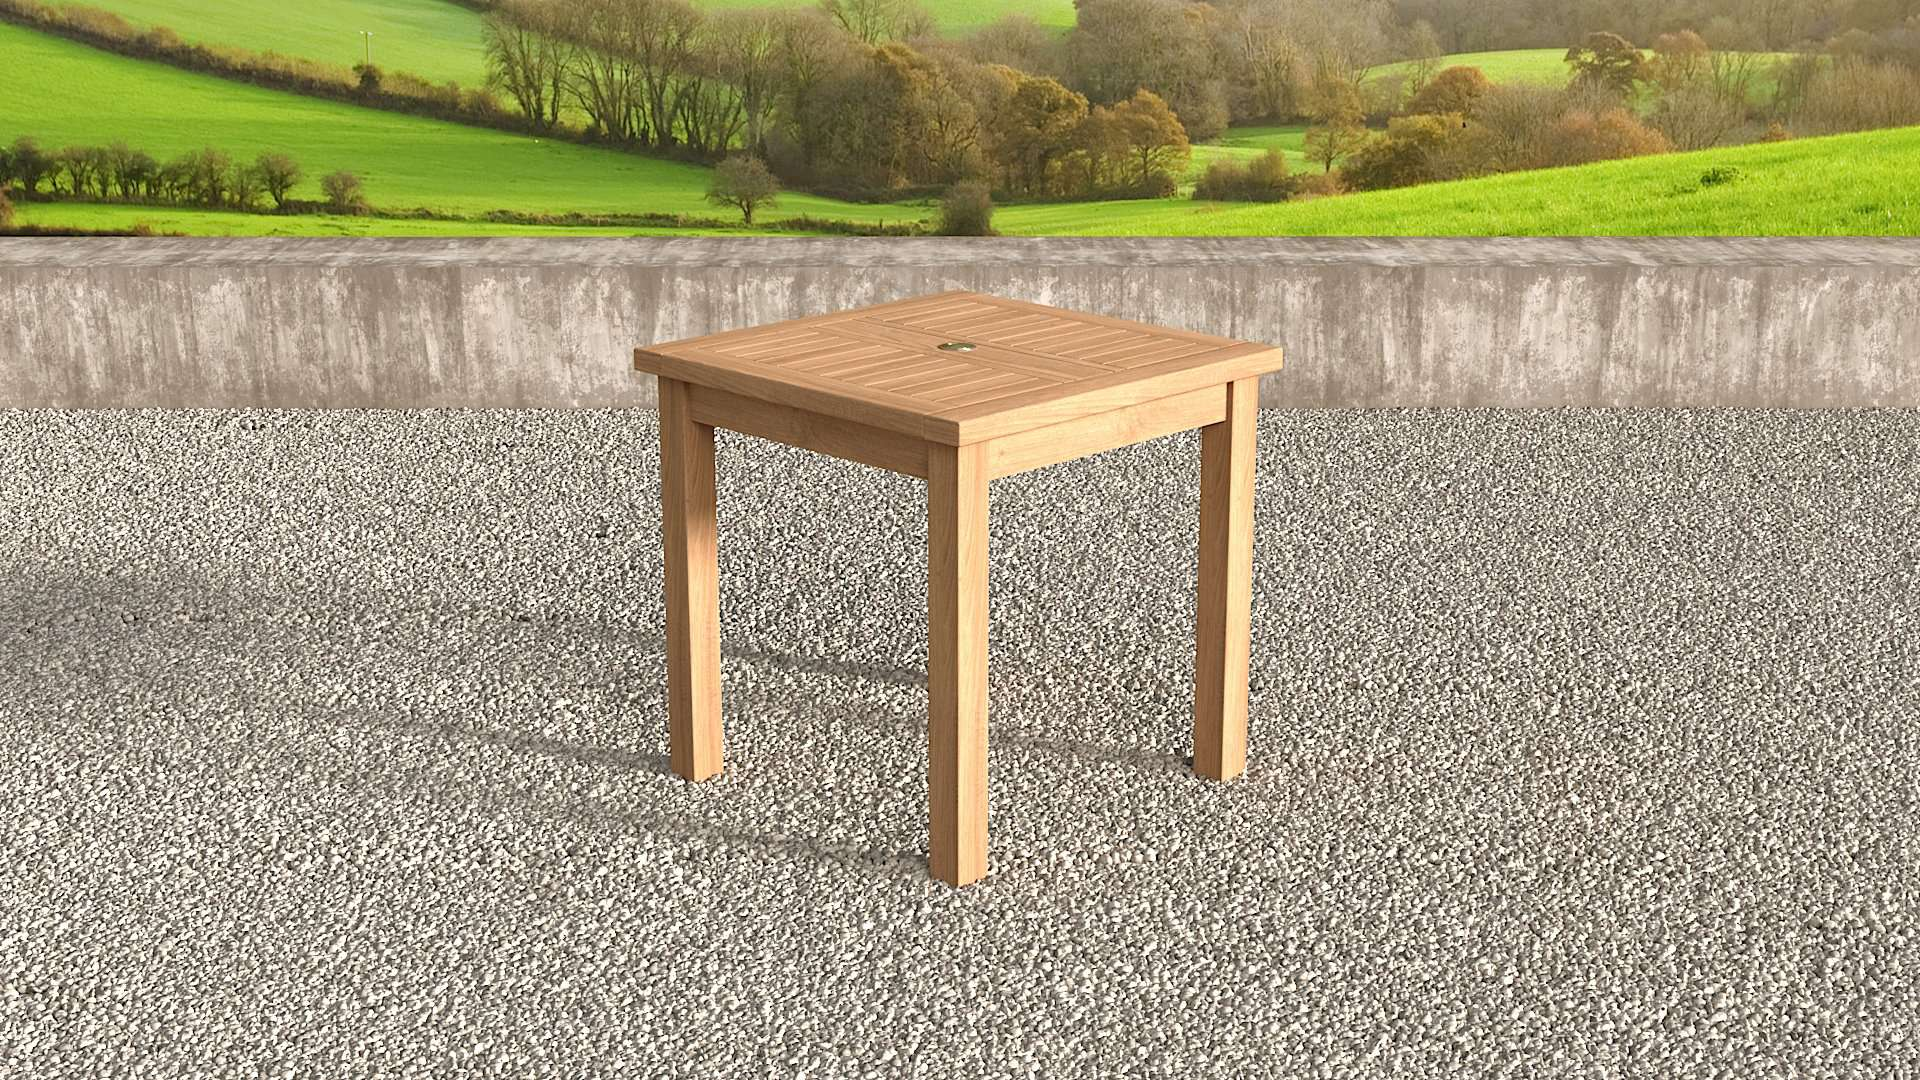 Square Garden Teak Table 90cm (2-4 Seater)  - Chic Teak® | Luxury Teak Furniture